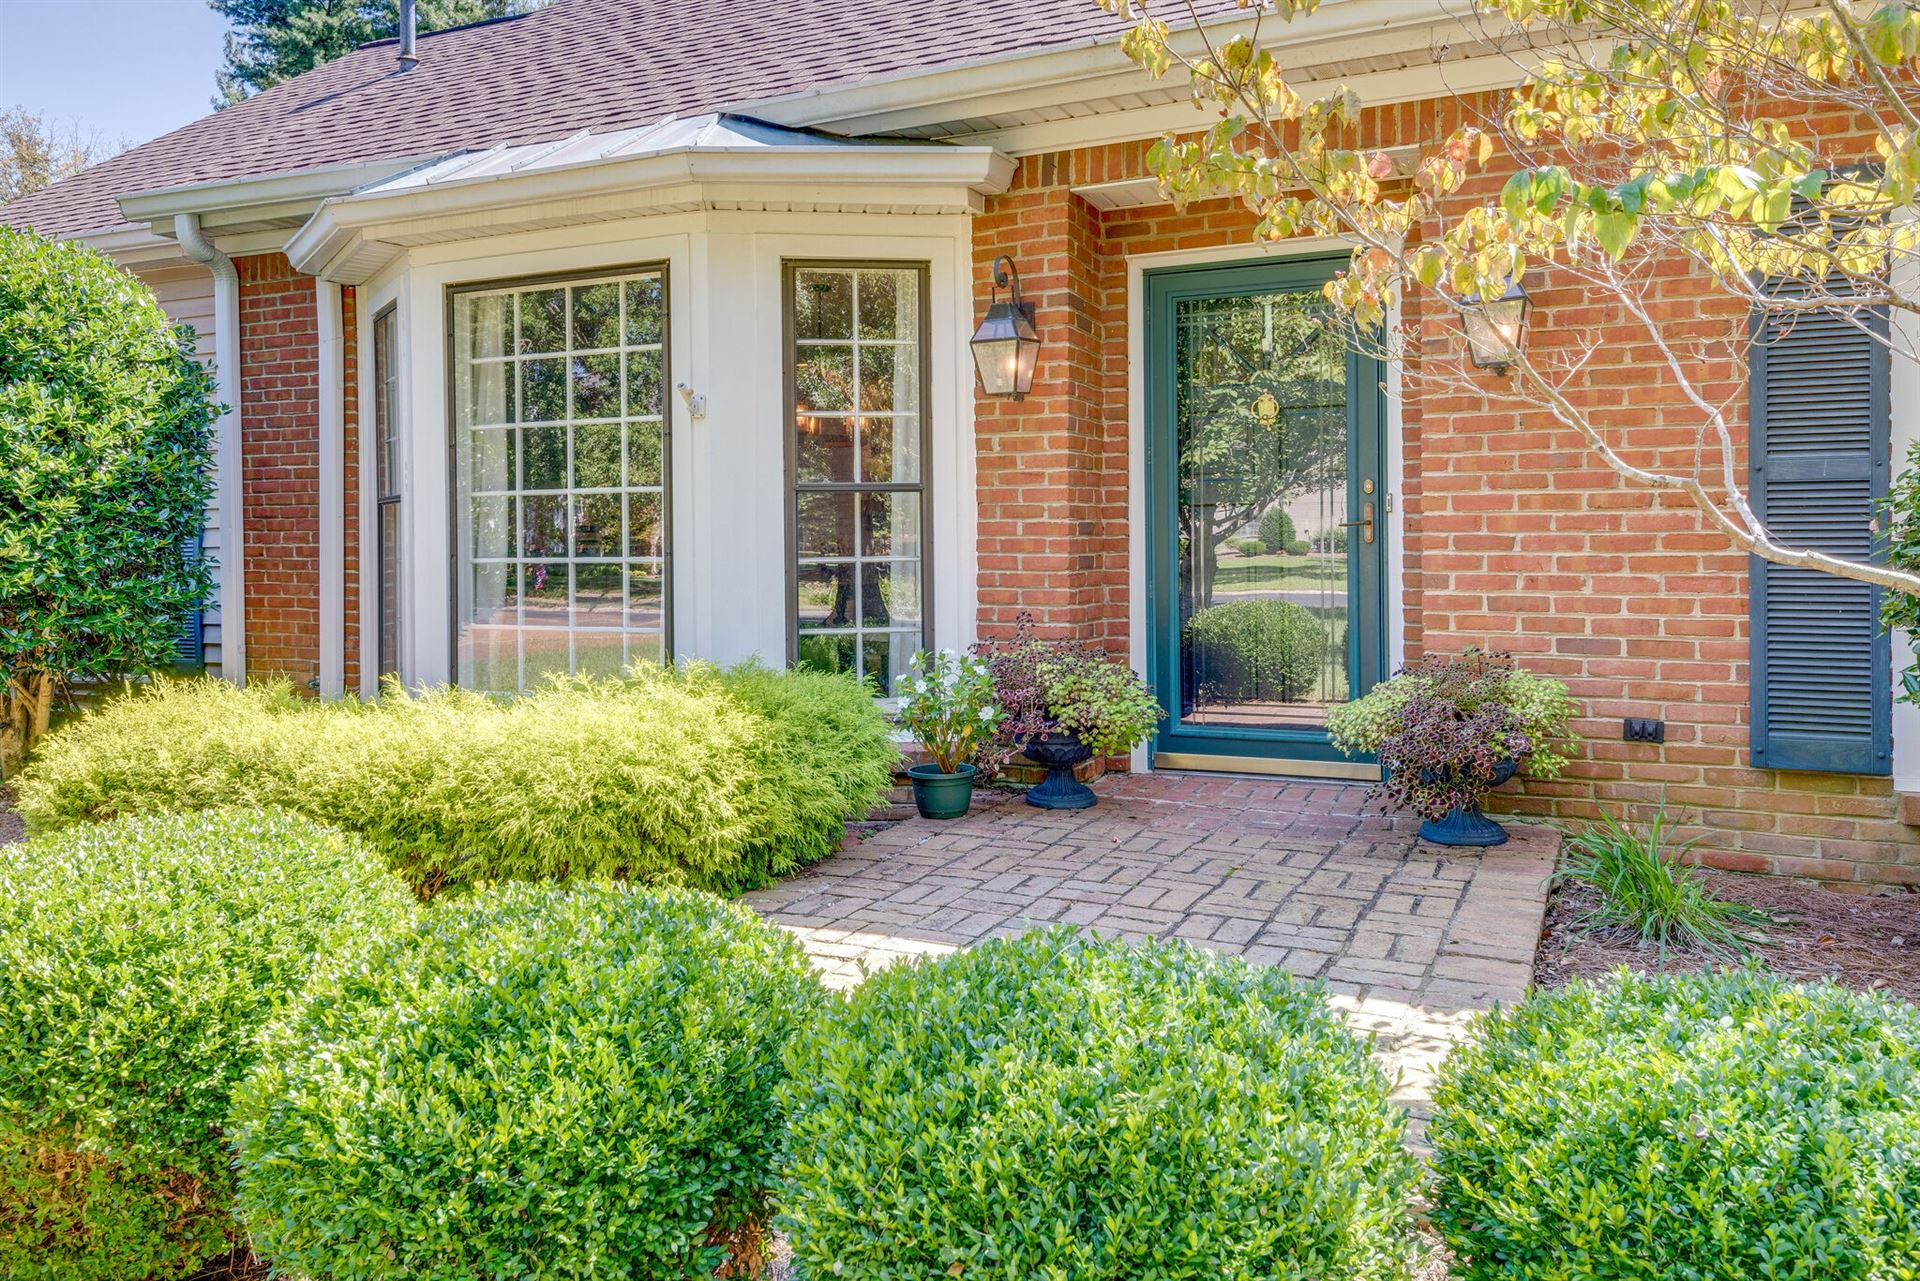 Photo of 1529 Cabot Dr, Franklin, TN 37064 (MLS # 2289561)